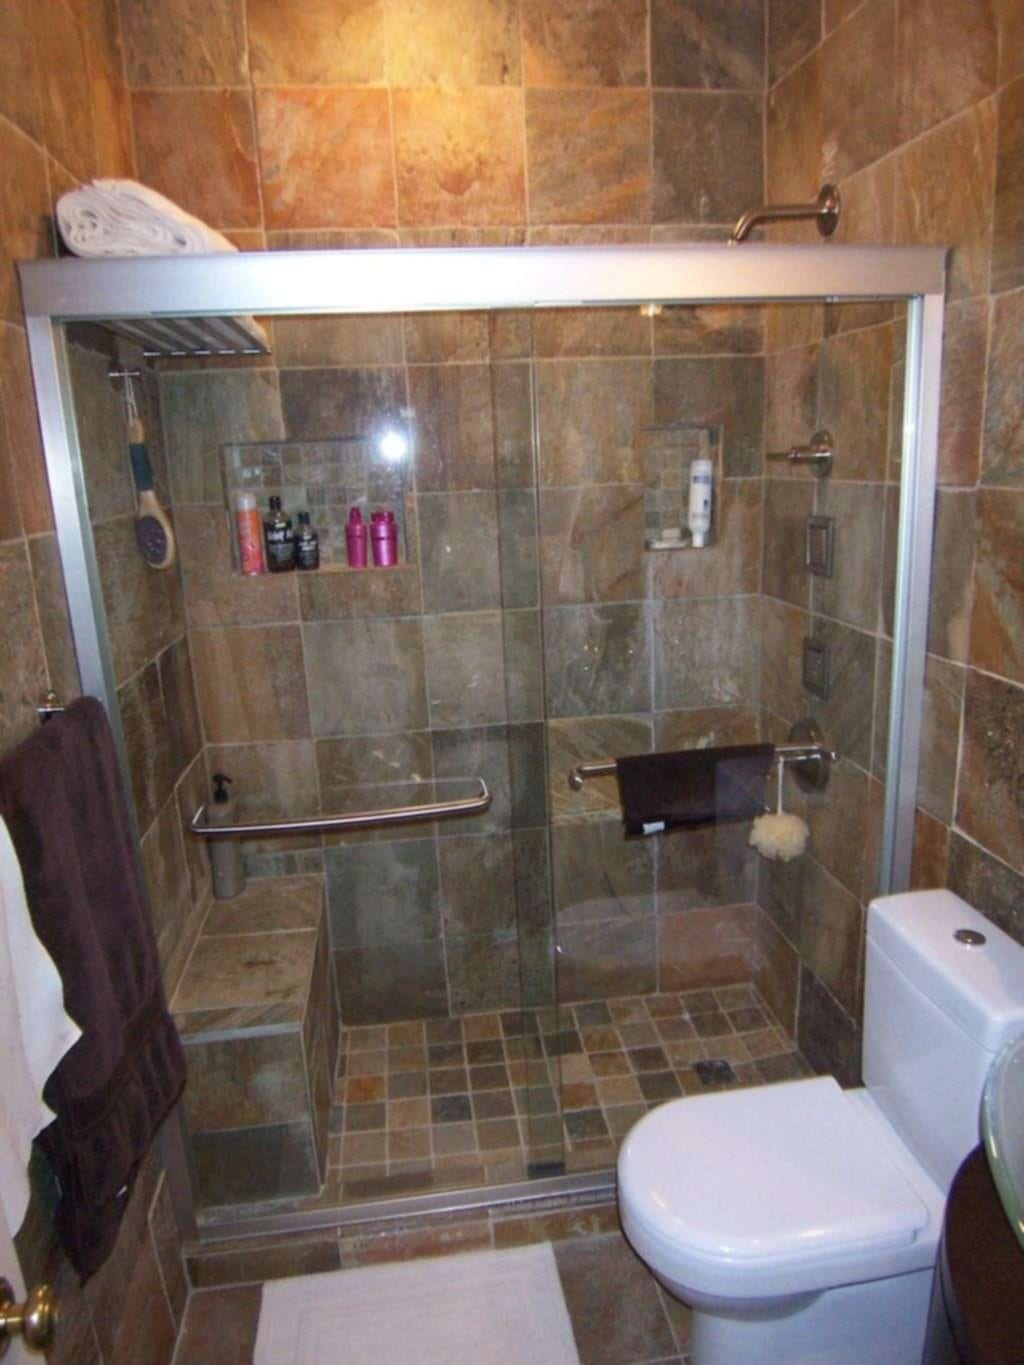 The Latest Bathroom Trends For 2016: Shower Stalls For Small Bathrooms